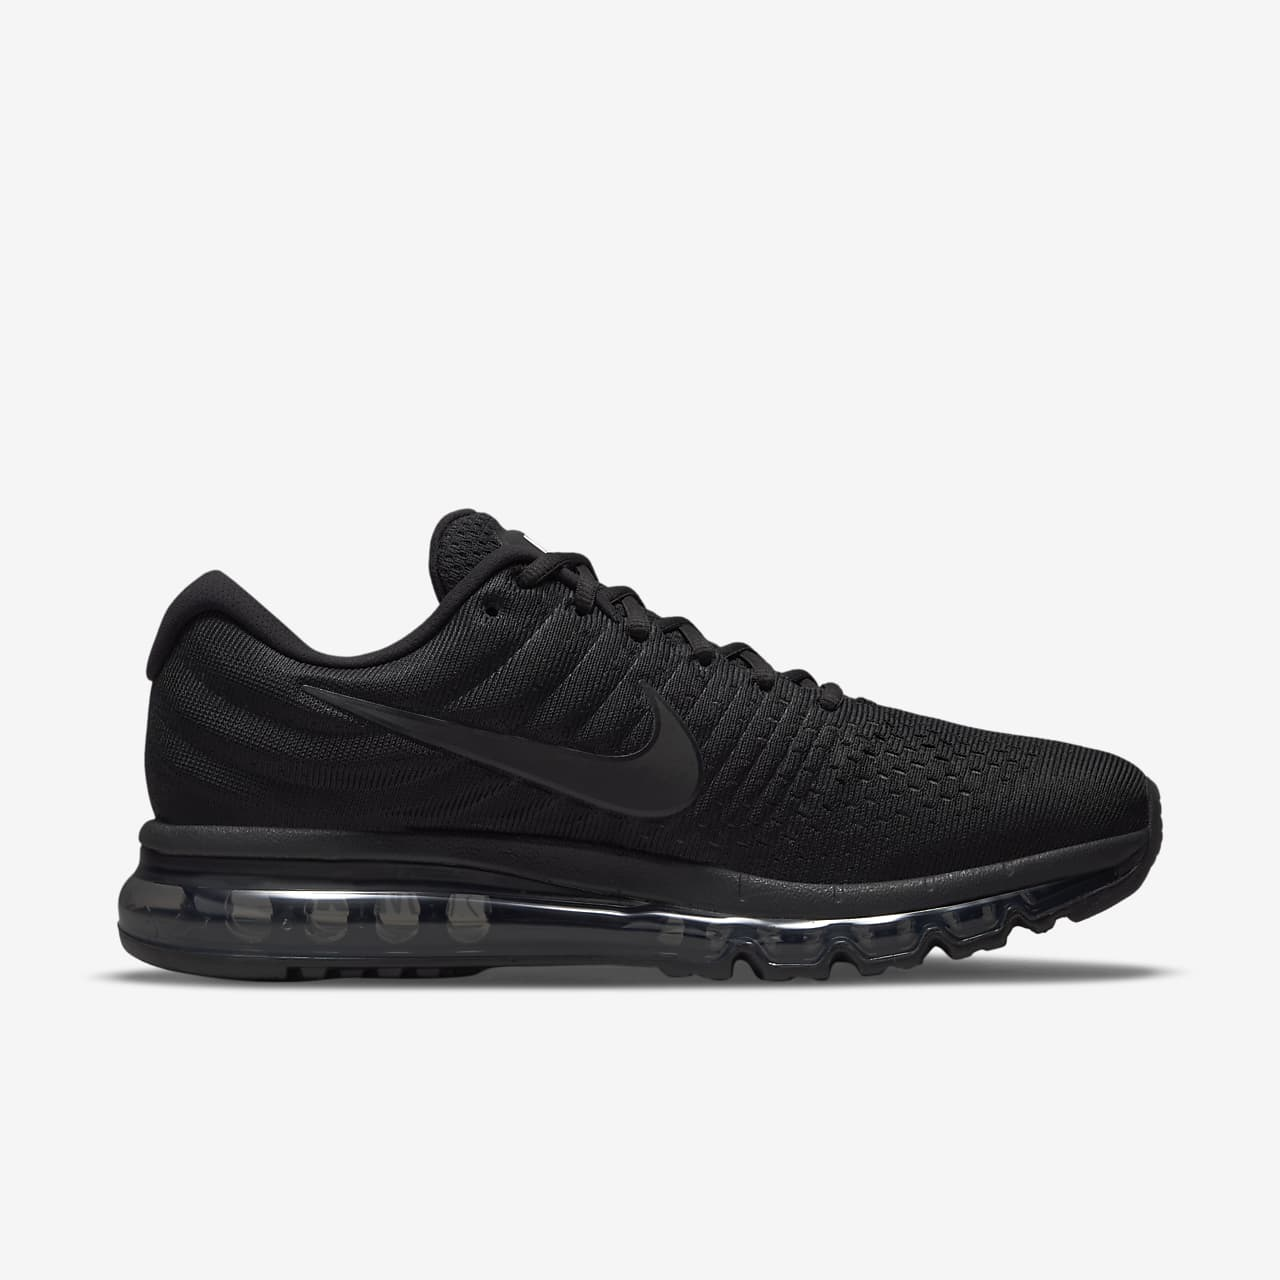 nike free run 2017 women's black nz